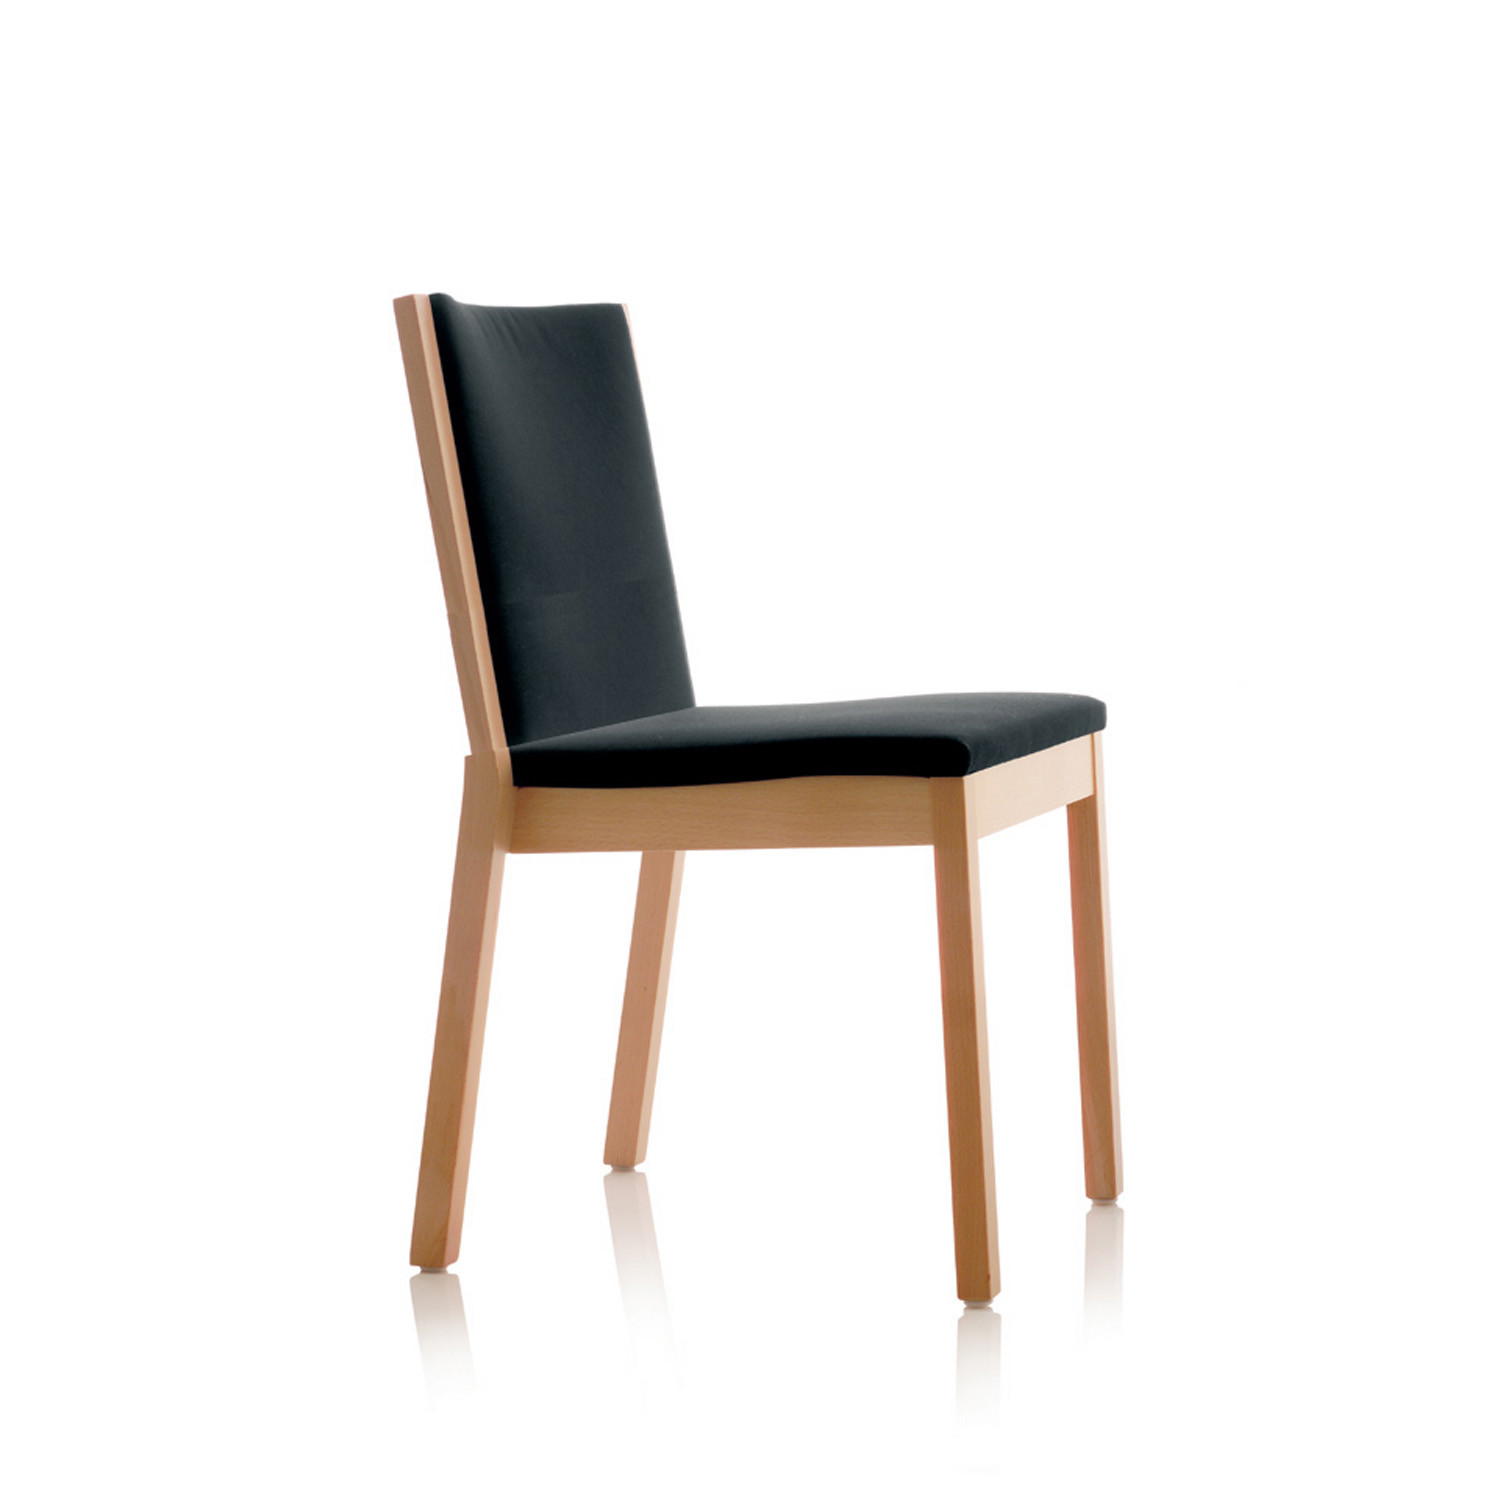 S13 Fully Upholstered Chair 6710-123